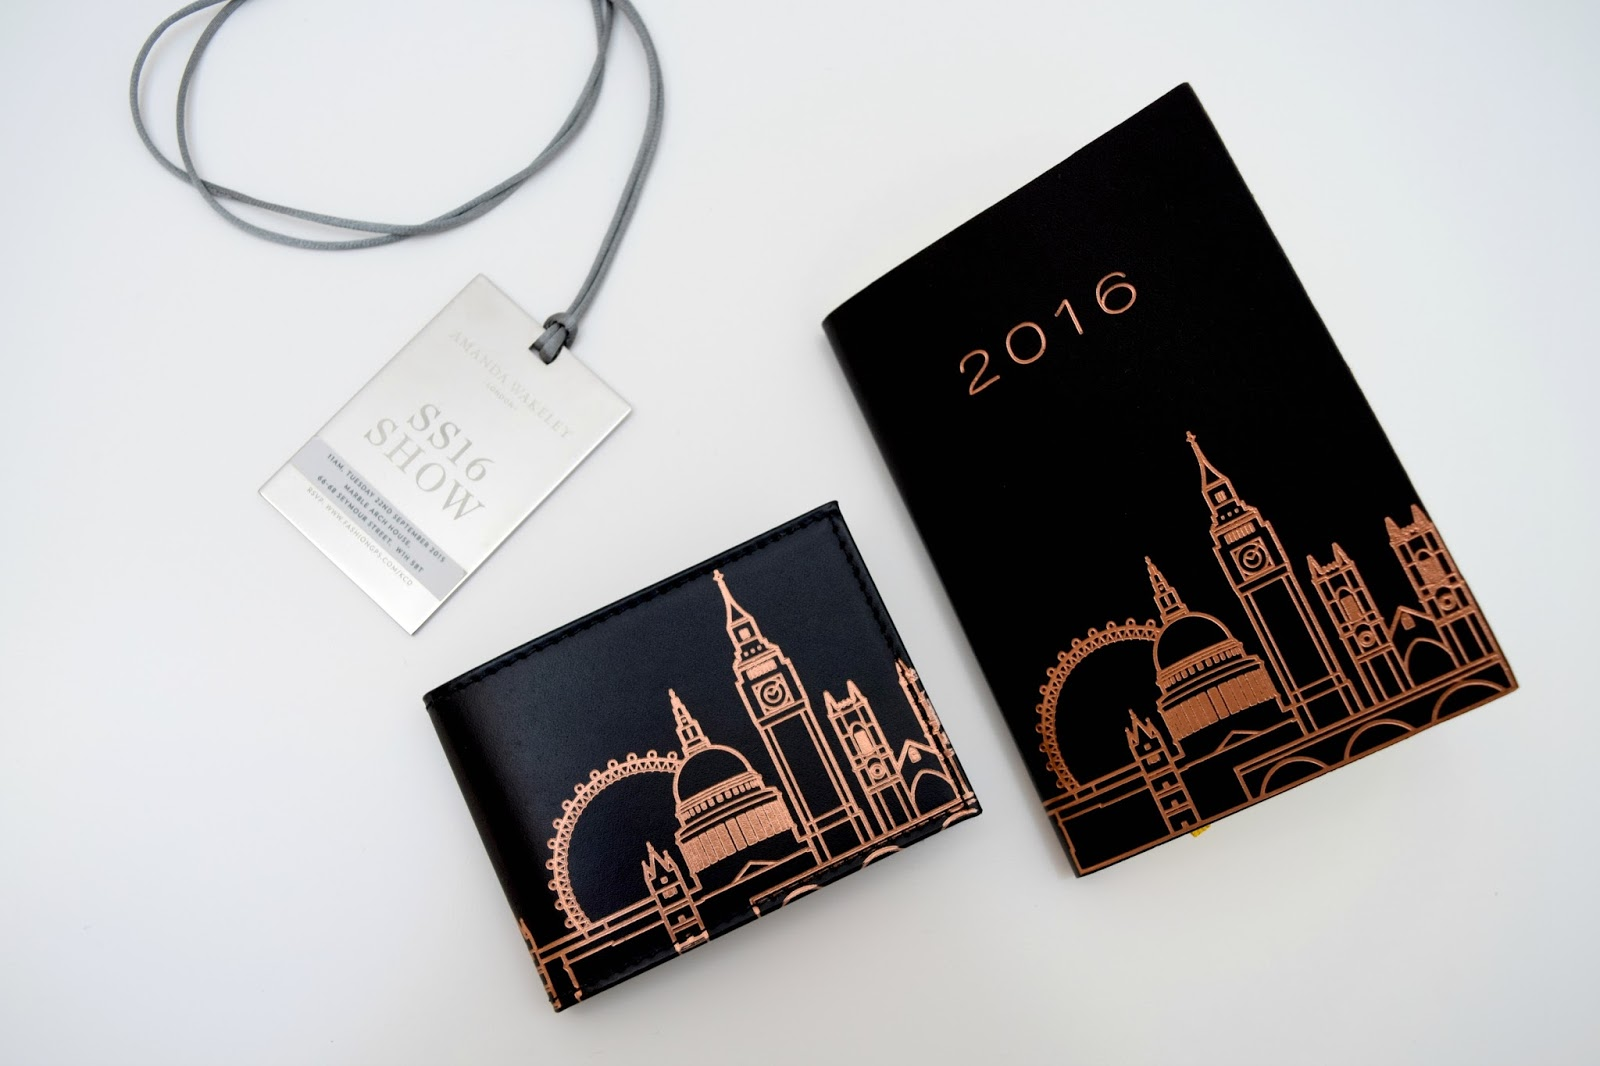 Undercover leather diary and oyster card holder London skyline